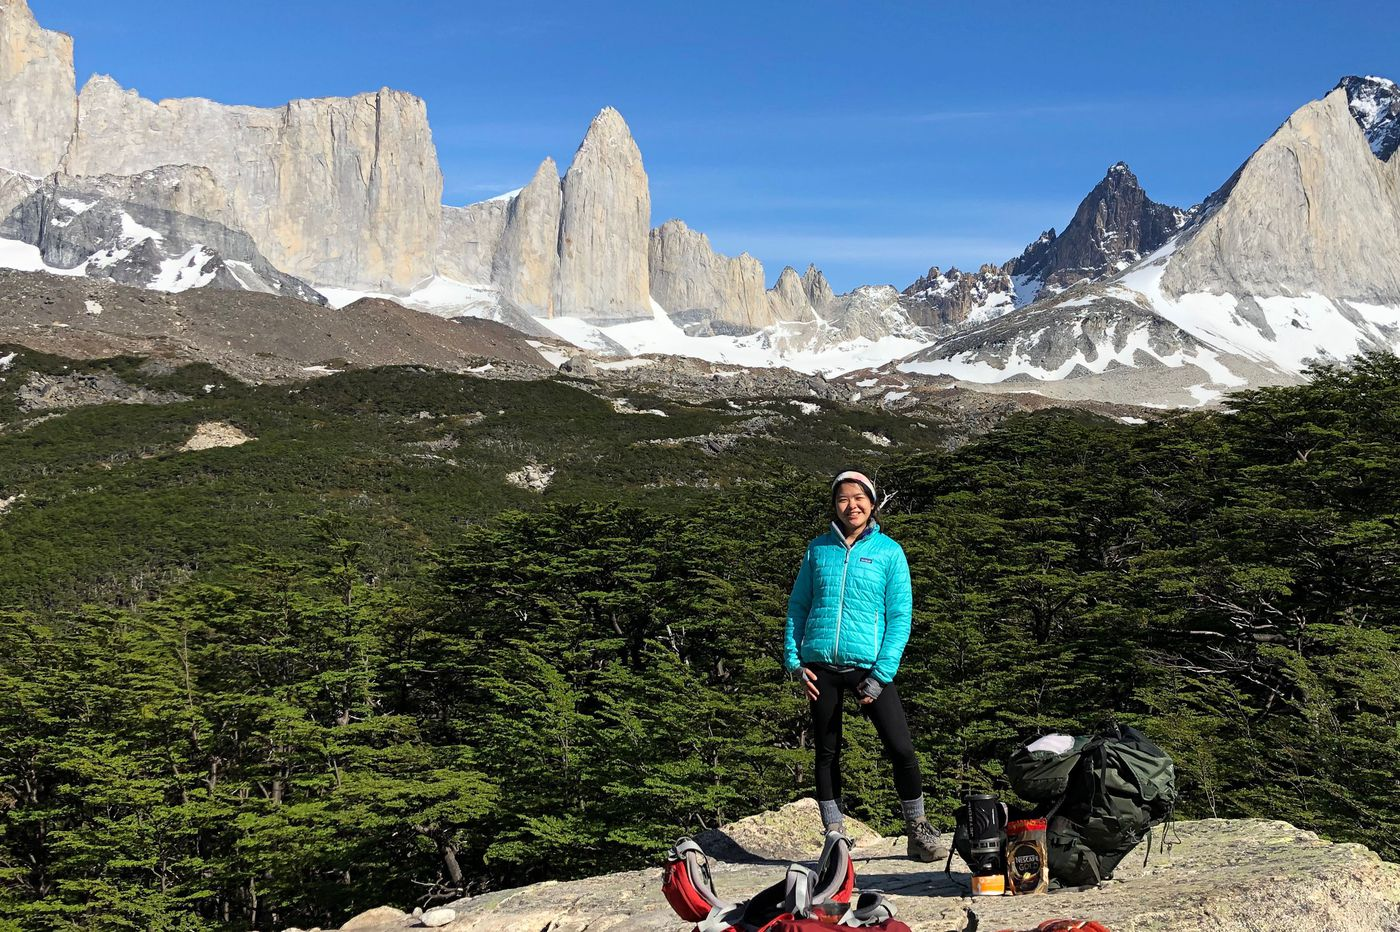 Personal Journey: A novice hiker tackles Chile's Torres del Paine